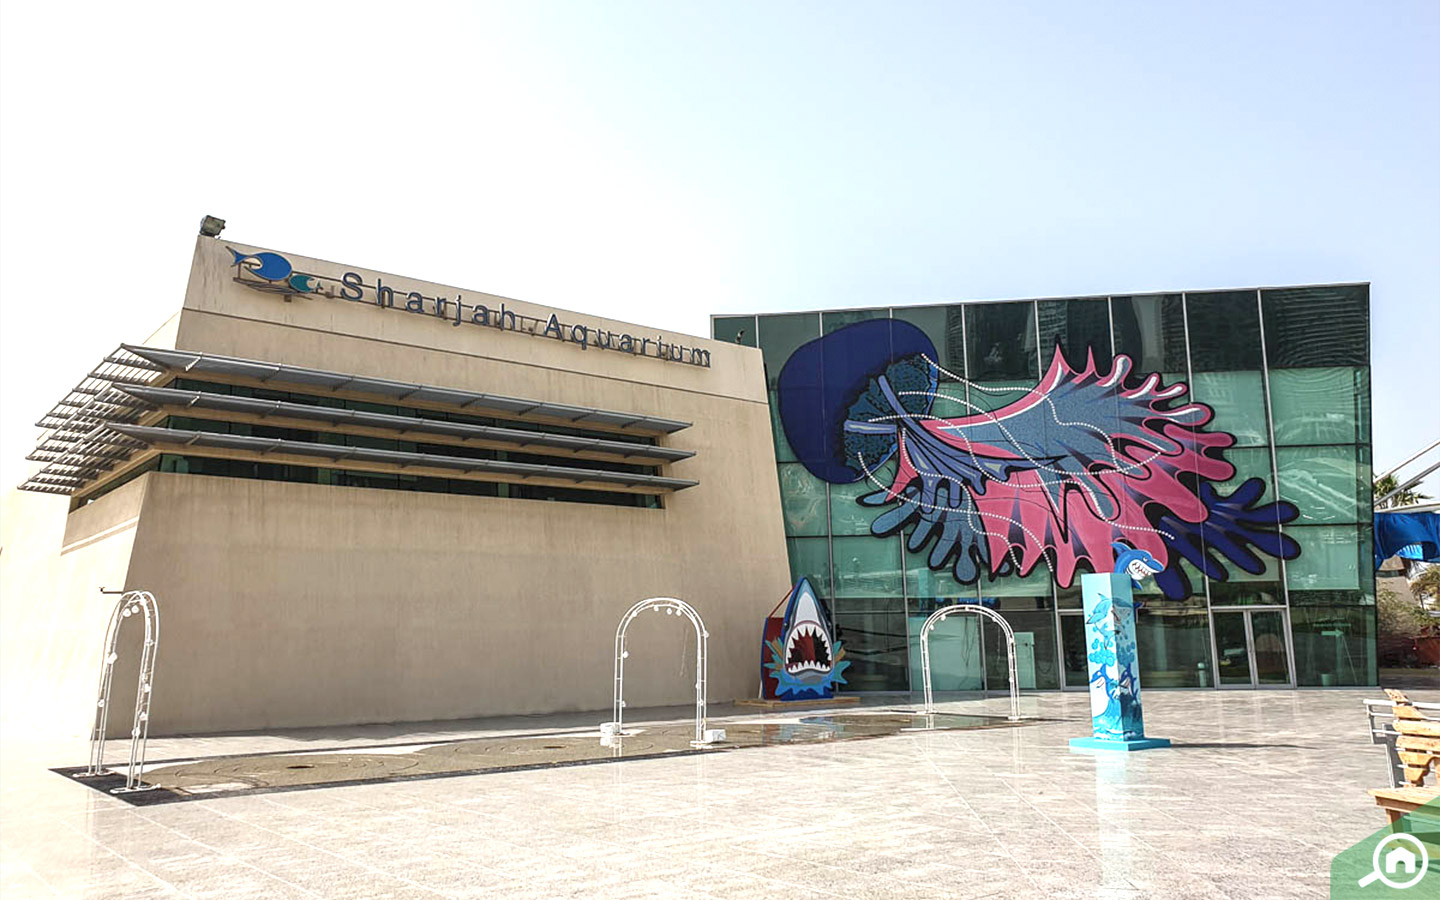 sharjah aquarium near al khan